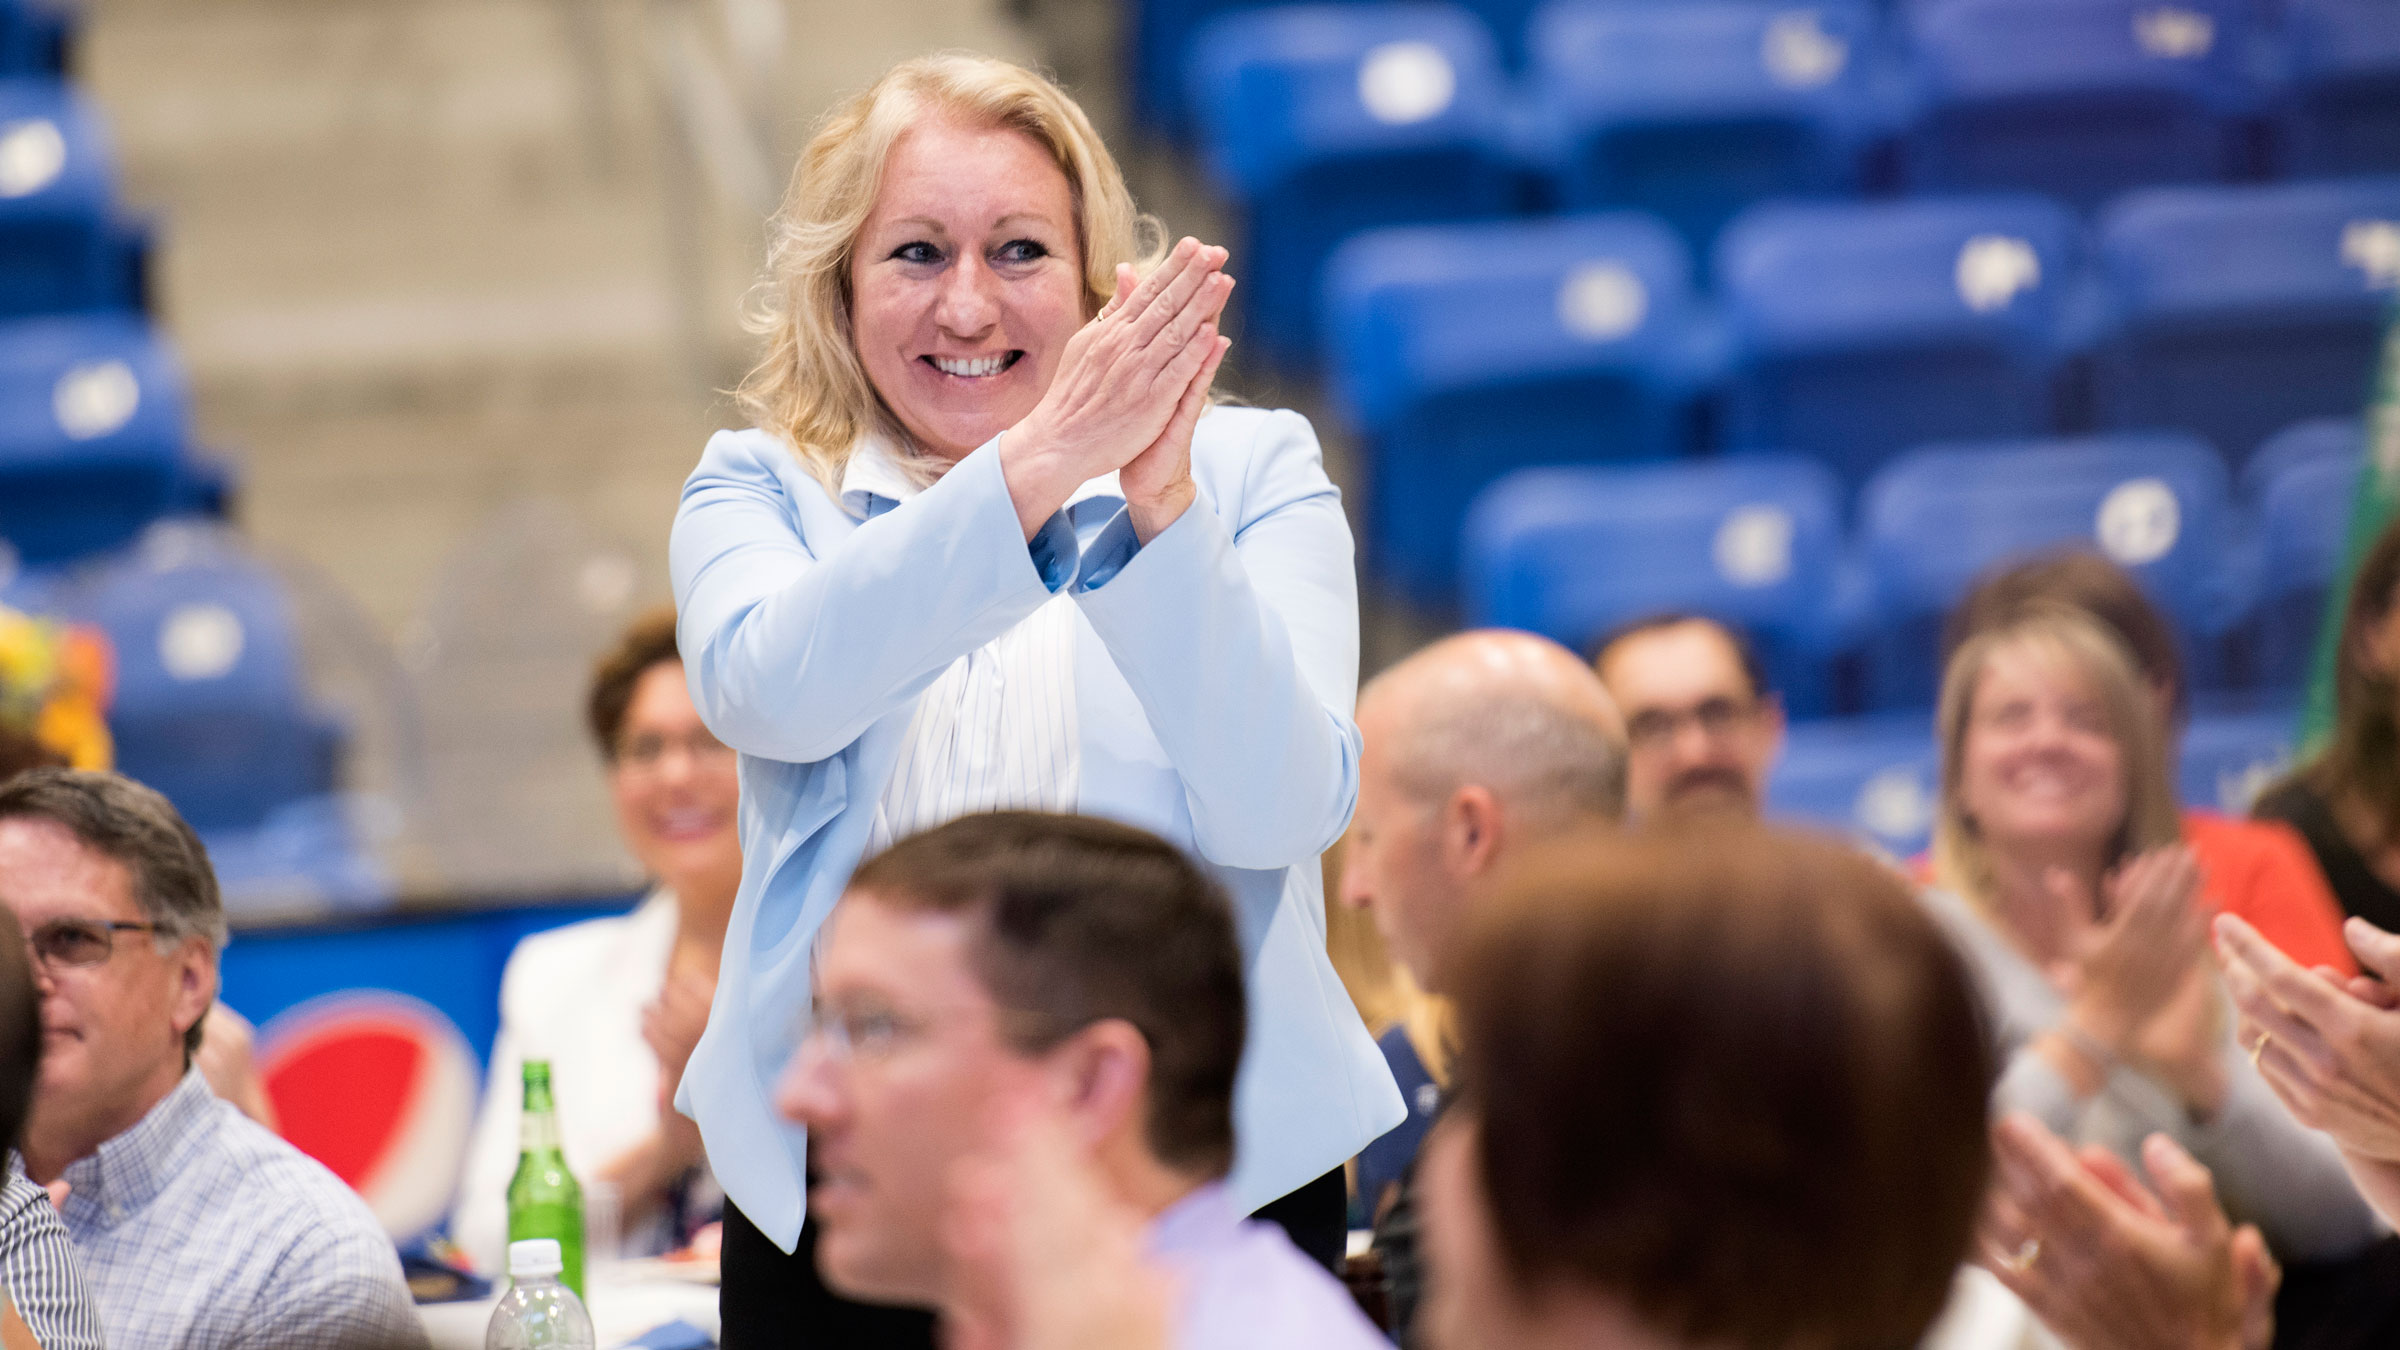 Janice Wachtarz smiles as the crowd around her claps during the Employee Recognition & Retiree Reception event.